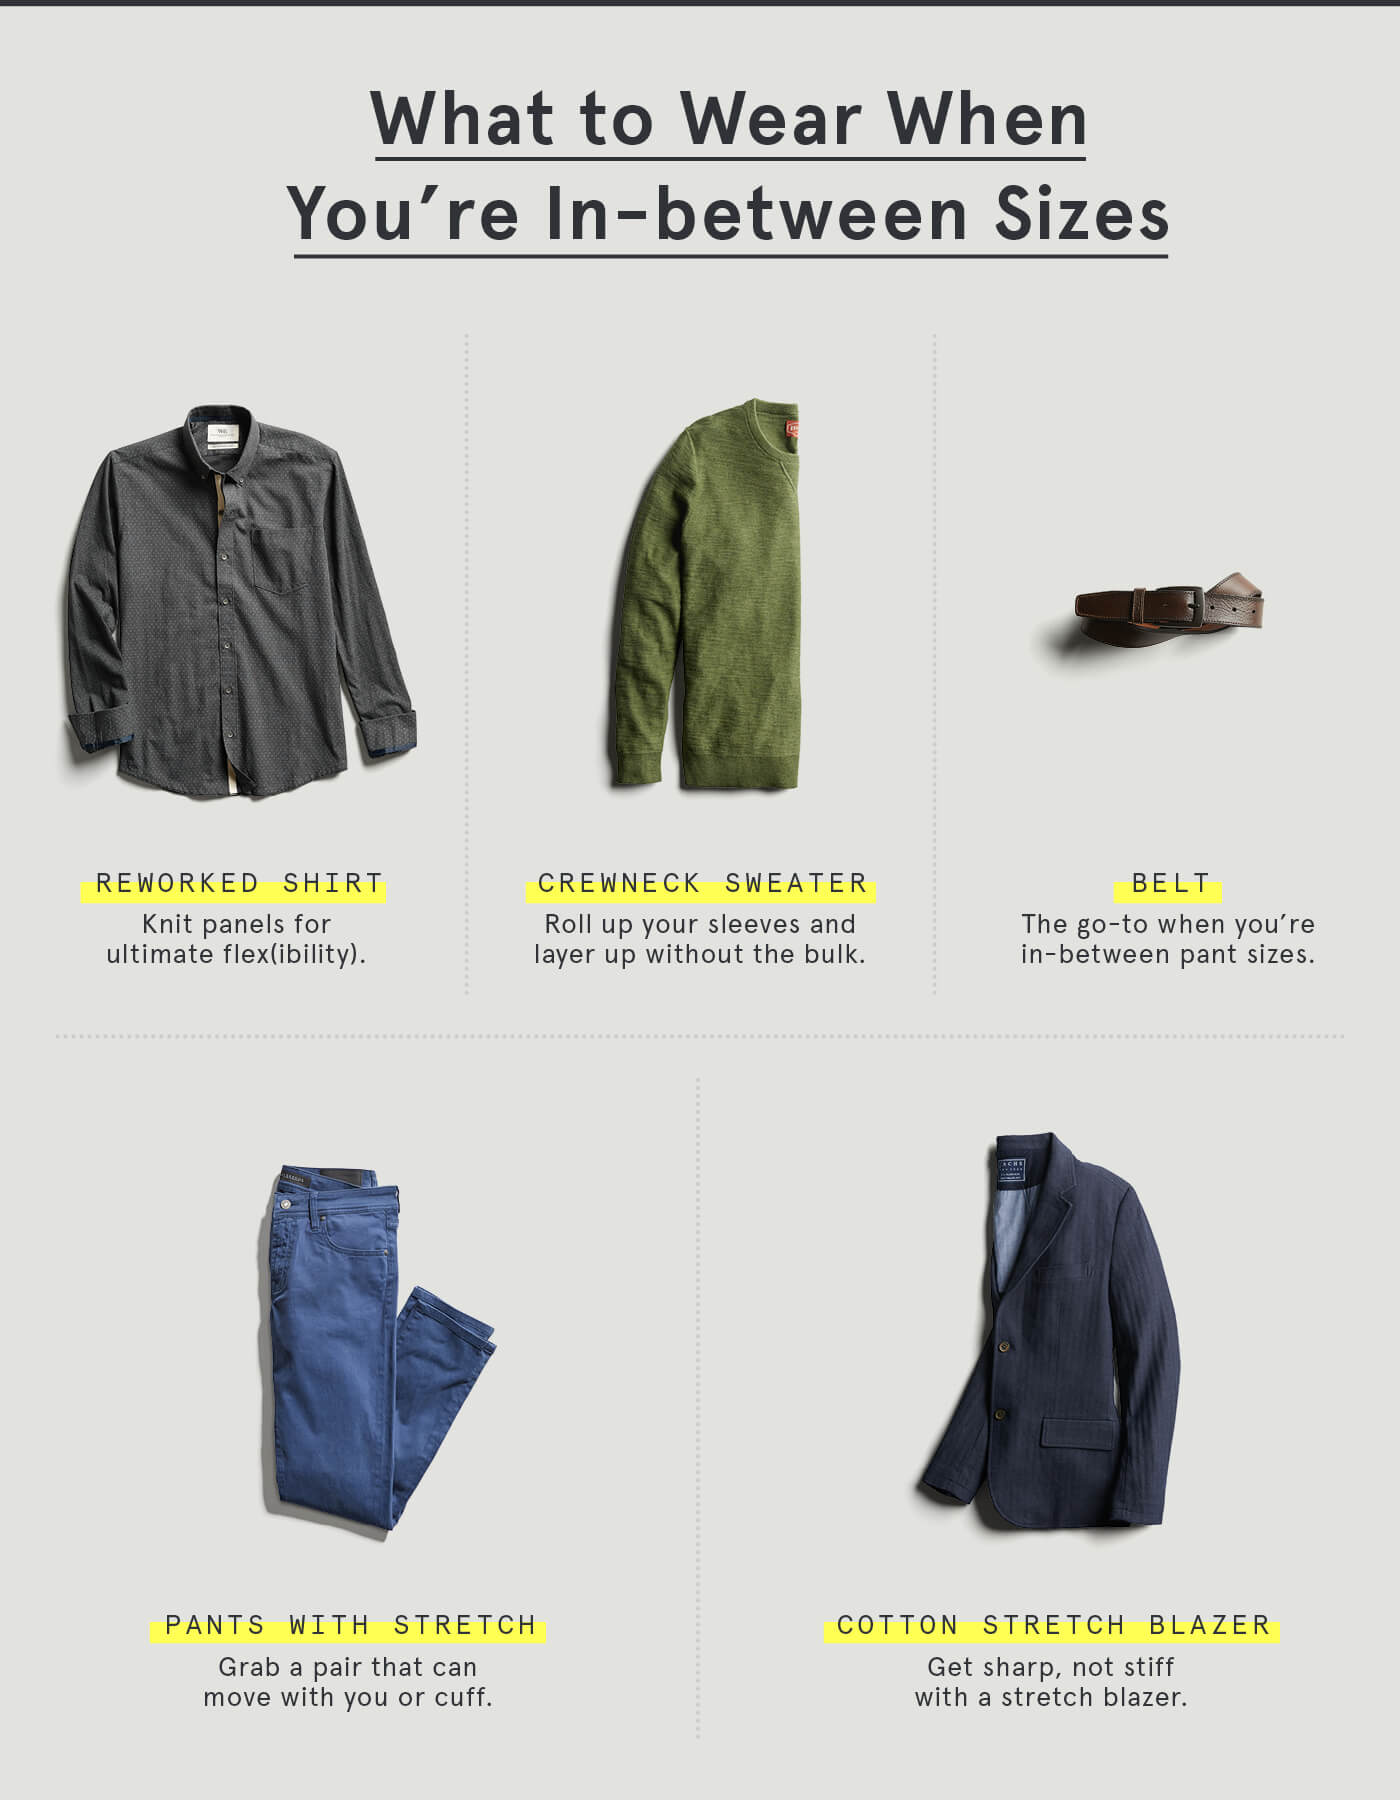 What to wear in between sizes